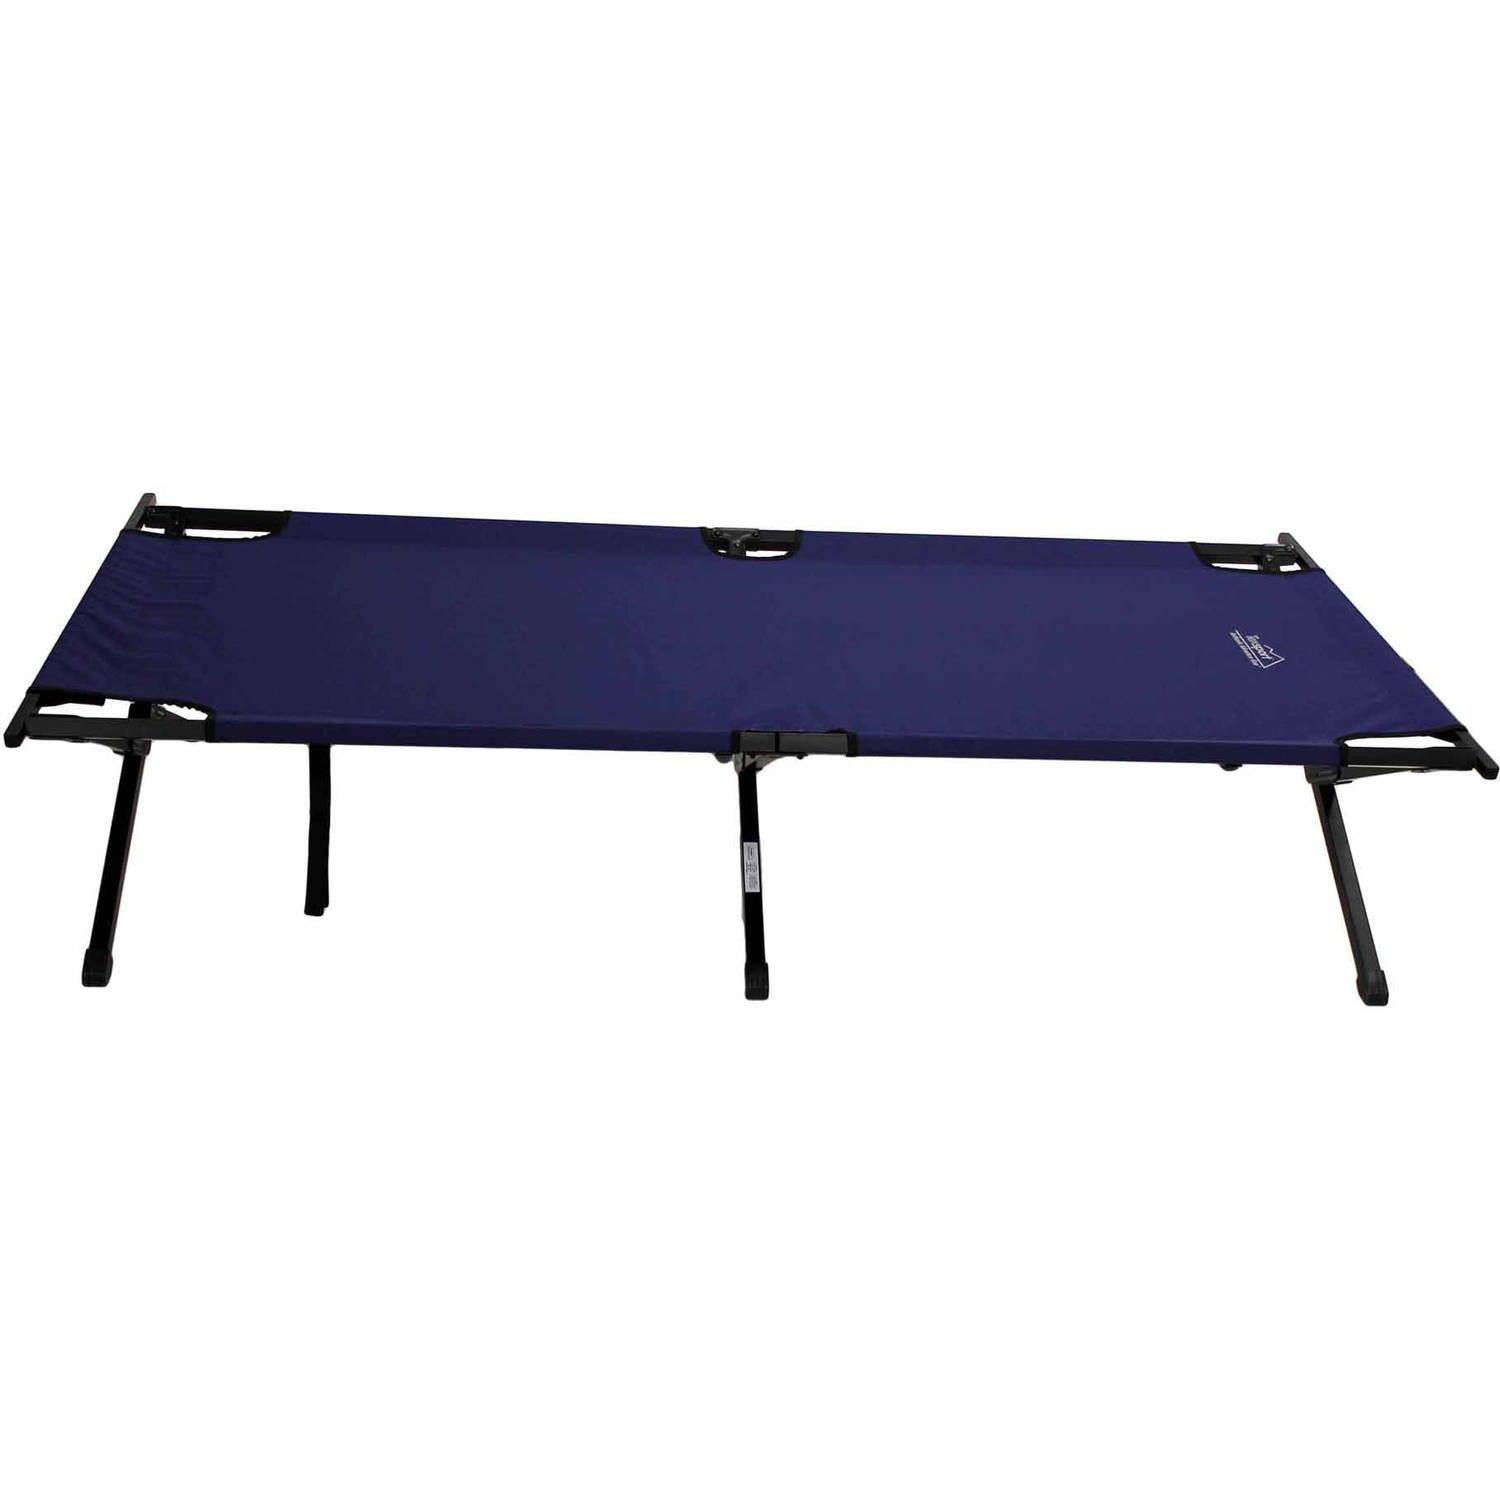 Tex Sport Cot Large, Folding, Steel by Tex Sport